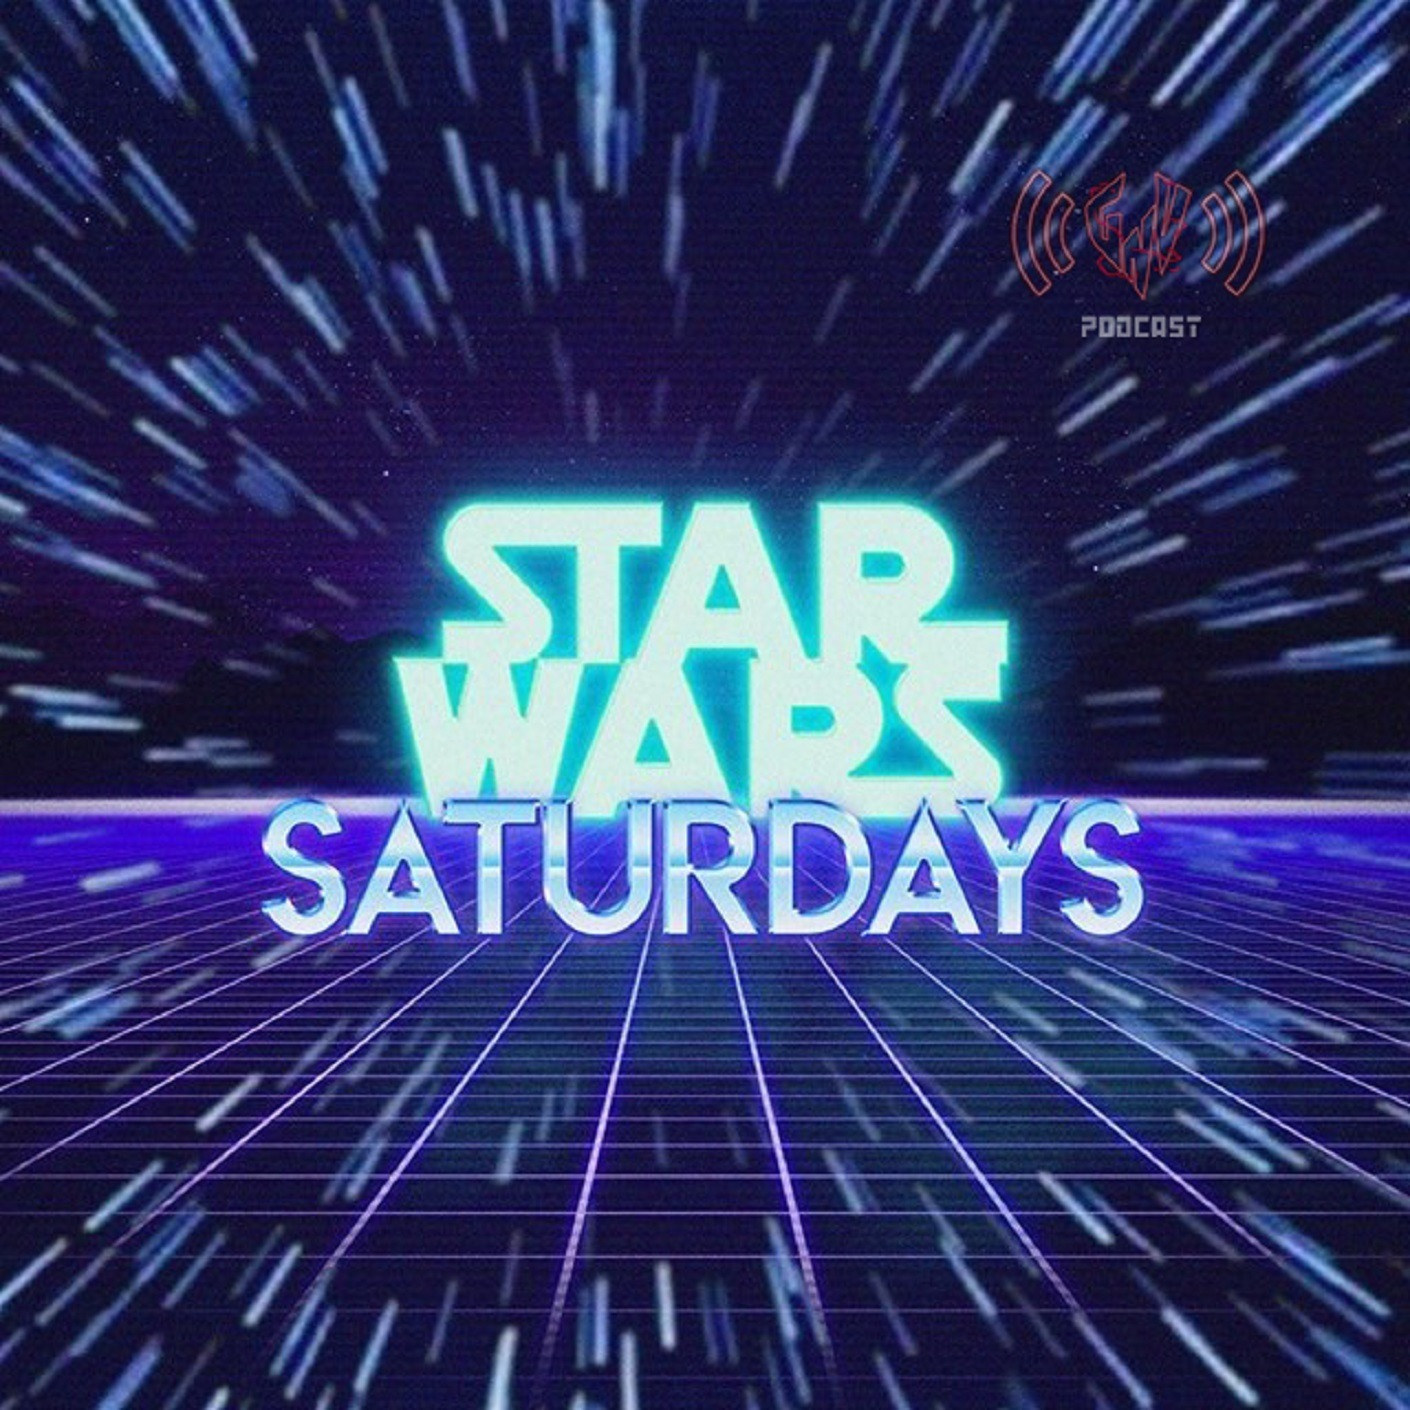 Star Wars Saturday: Fancast and Galactic News